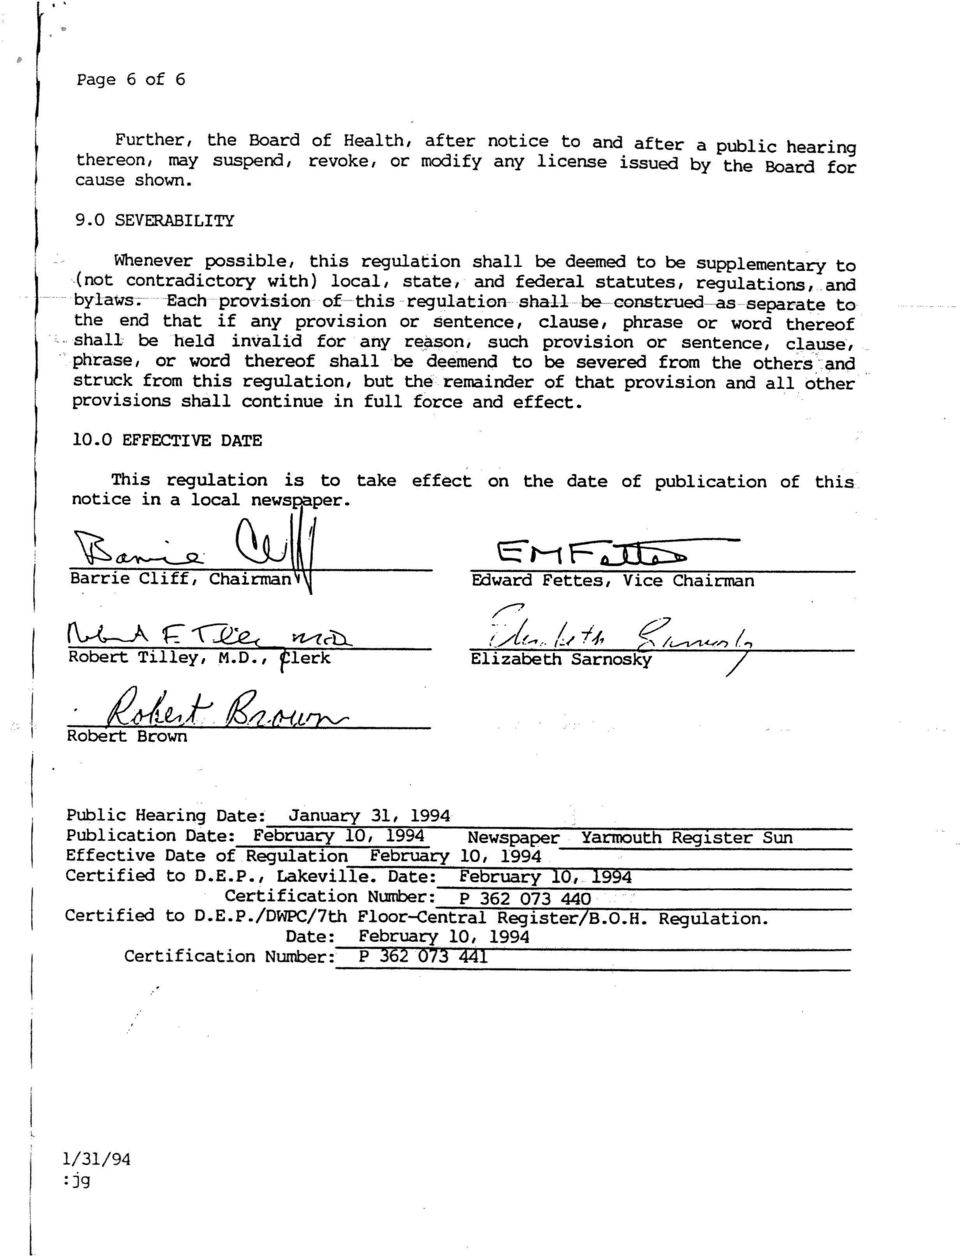 Date: February 10, 1994 Certified to D.E.P./DWPC/lth Floor-Central Register/B.0.H. Regulation.